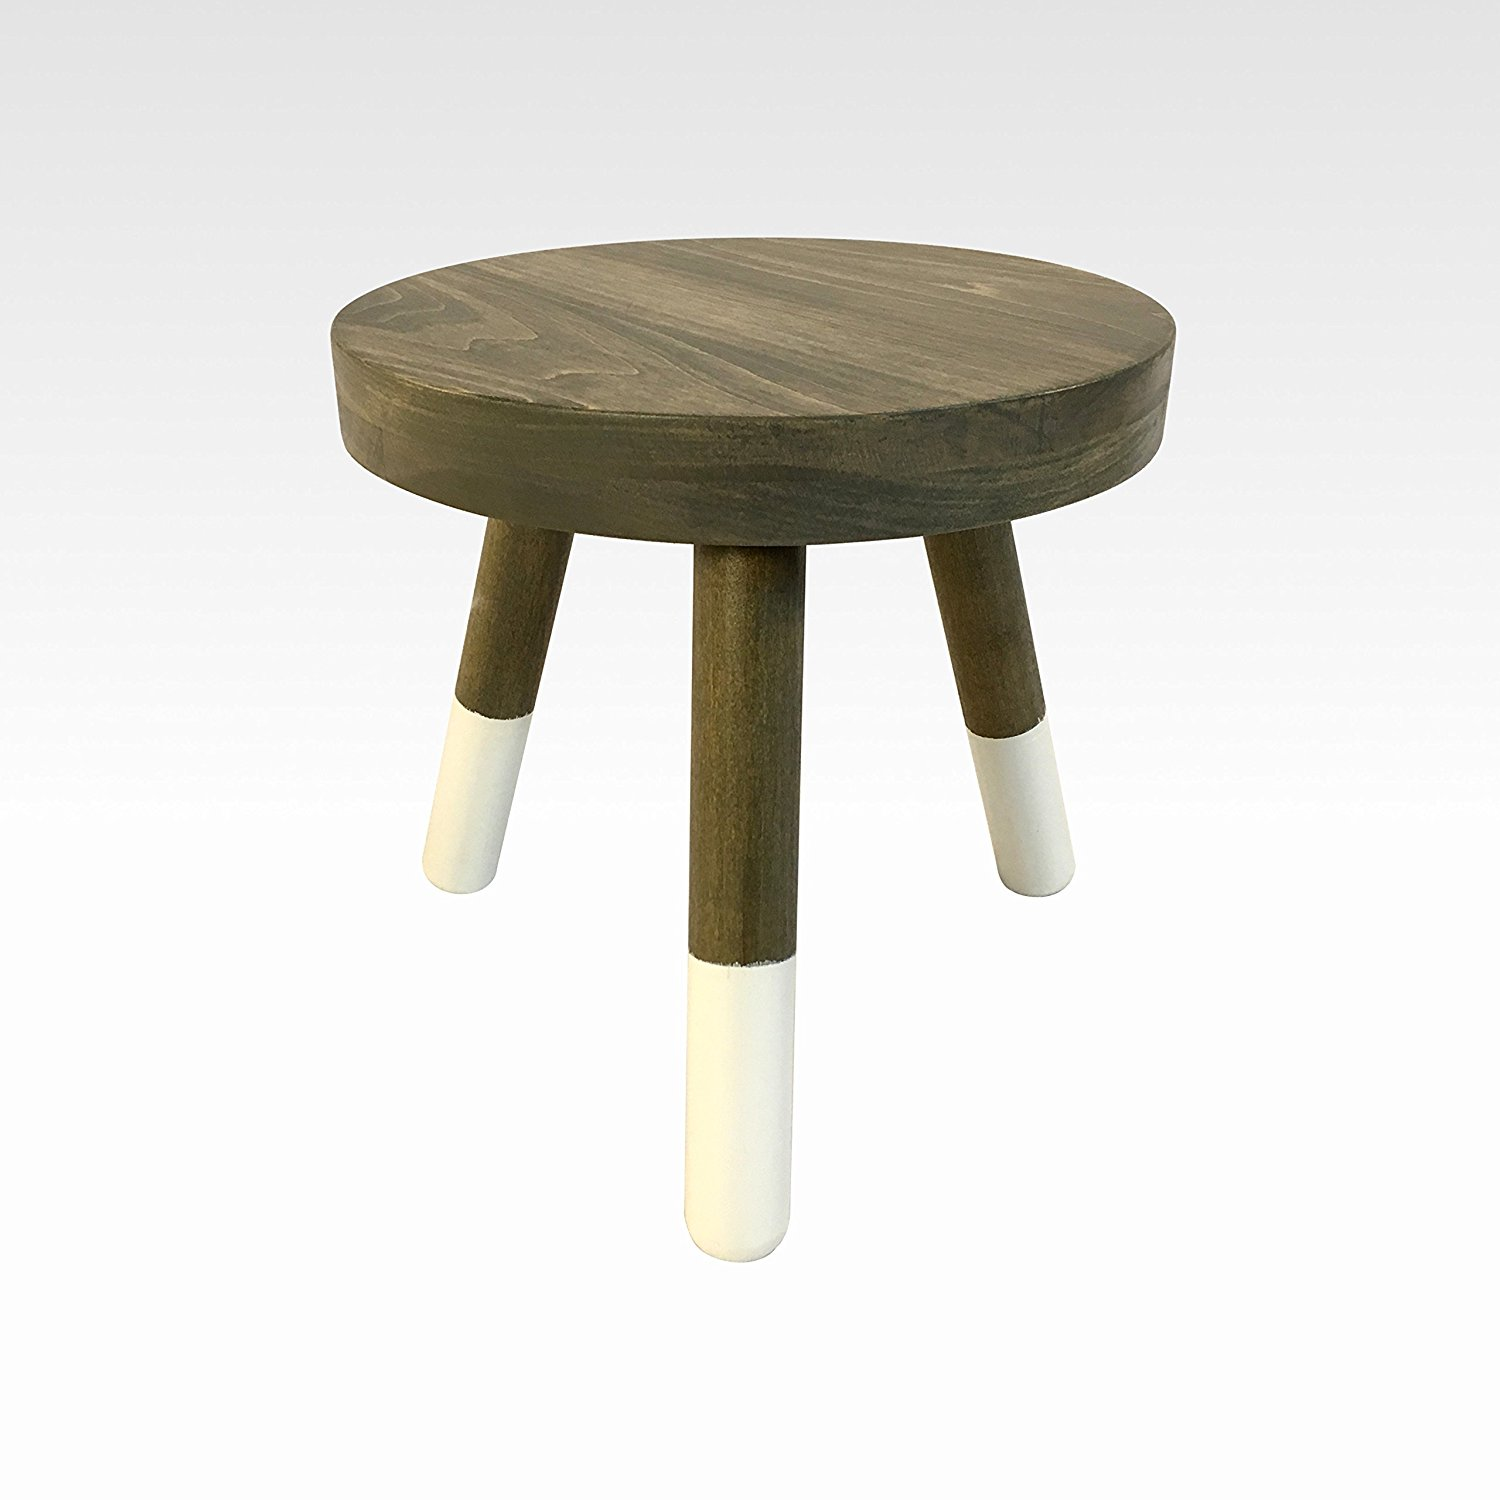 Wood Three Legged Stool, Modern Plant Stand in Walnut by Candlewood Furniture, Wooden, Tea Table, Kids Chair, Decorative